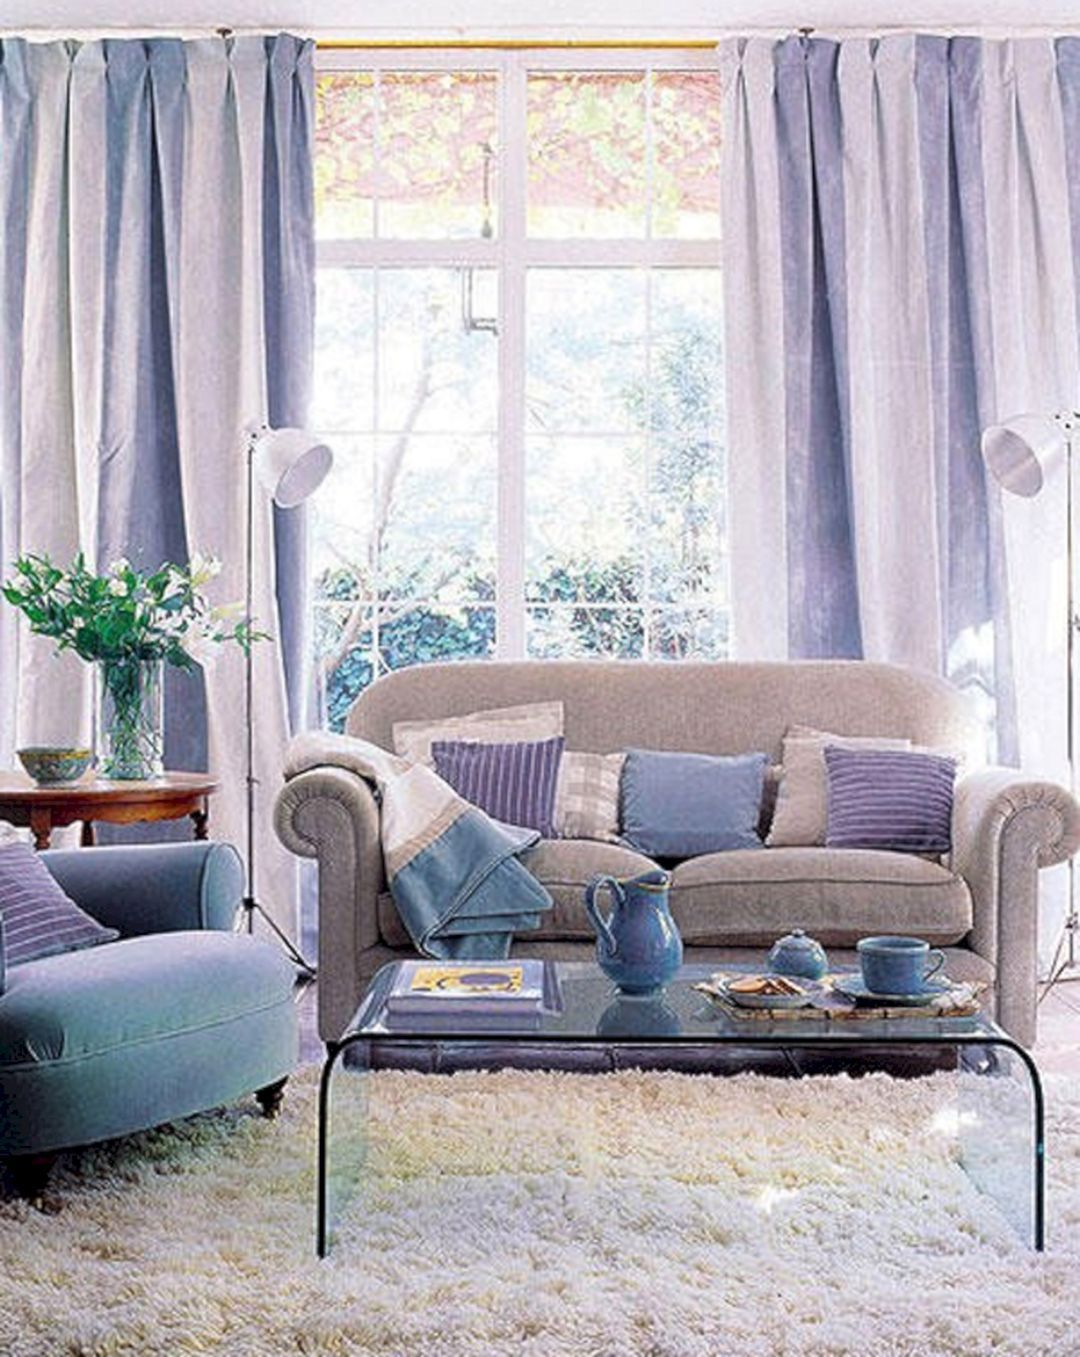 40+ Best Modern Decorating With Pastel Colors Ideas ...